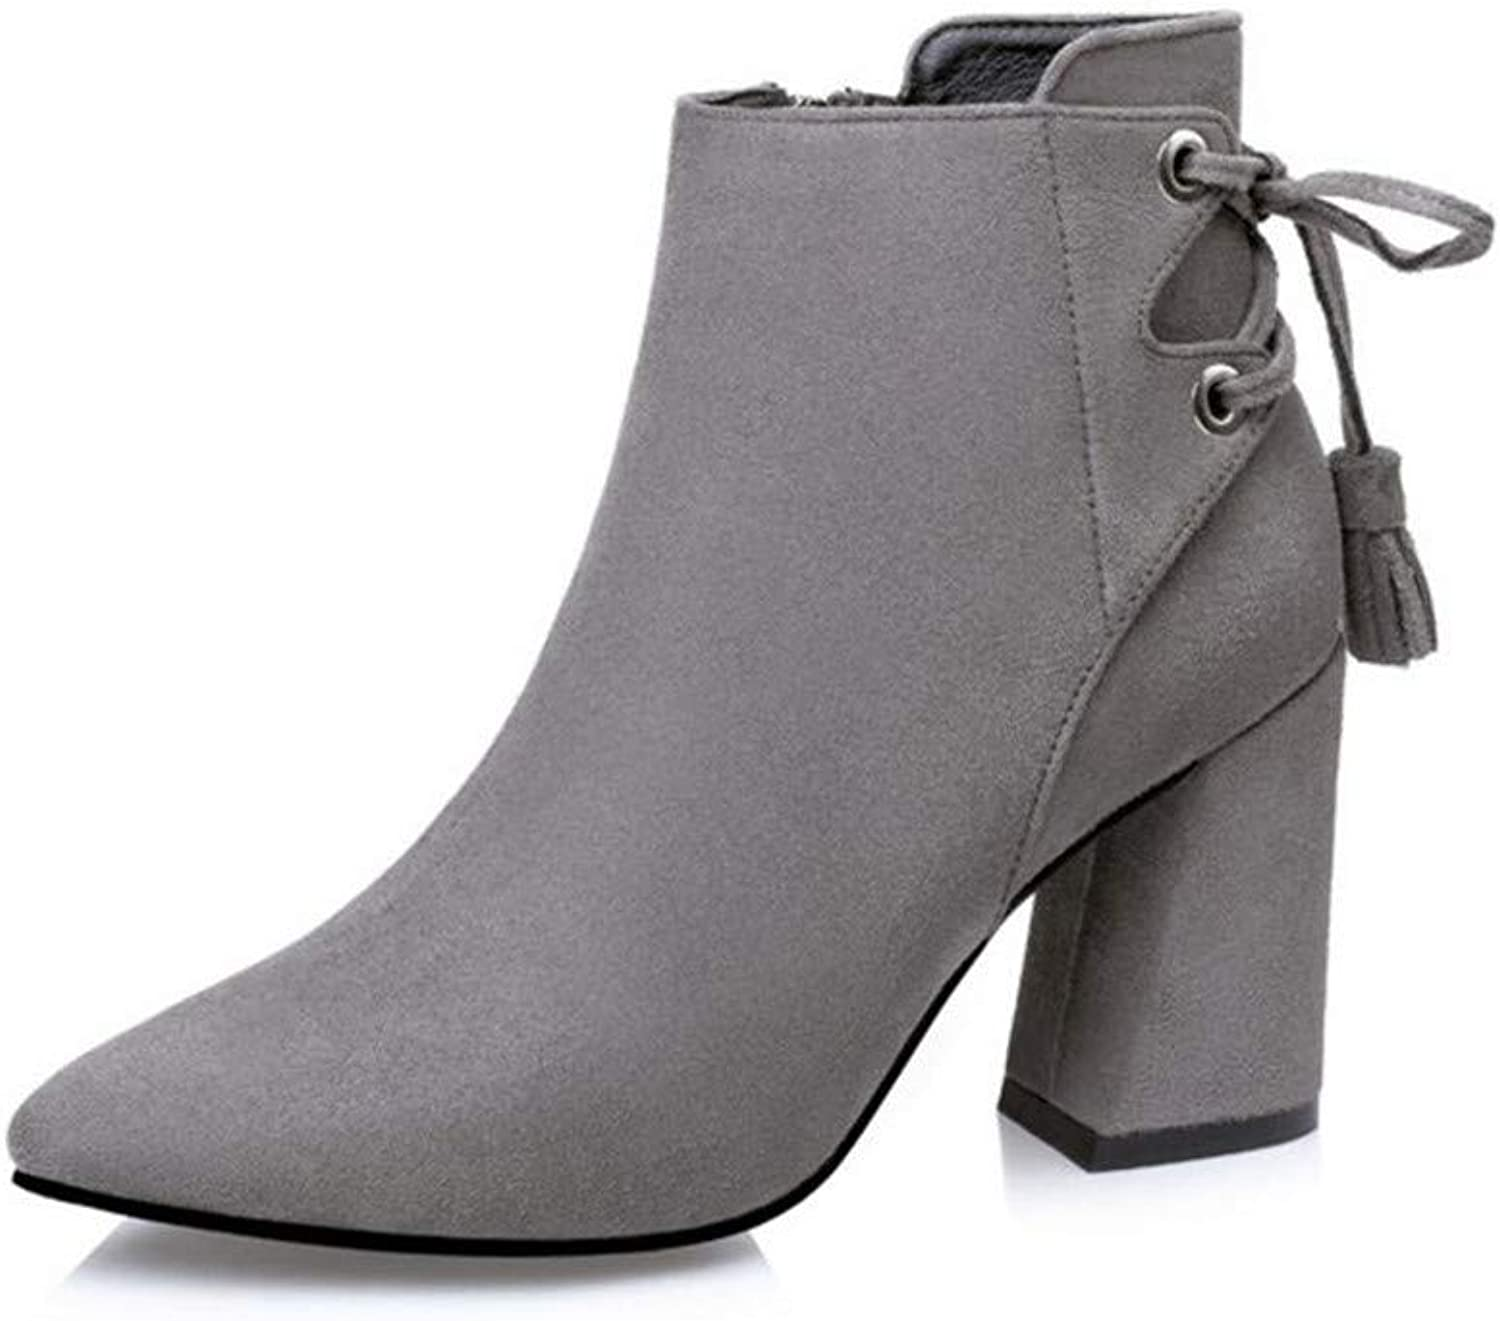 Zgshnfgk High Heel Booties for Women